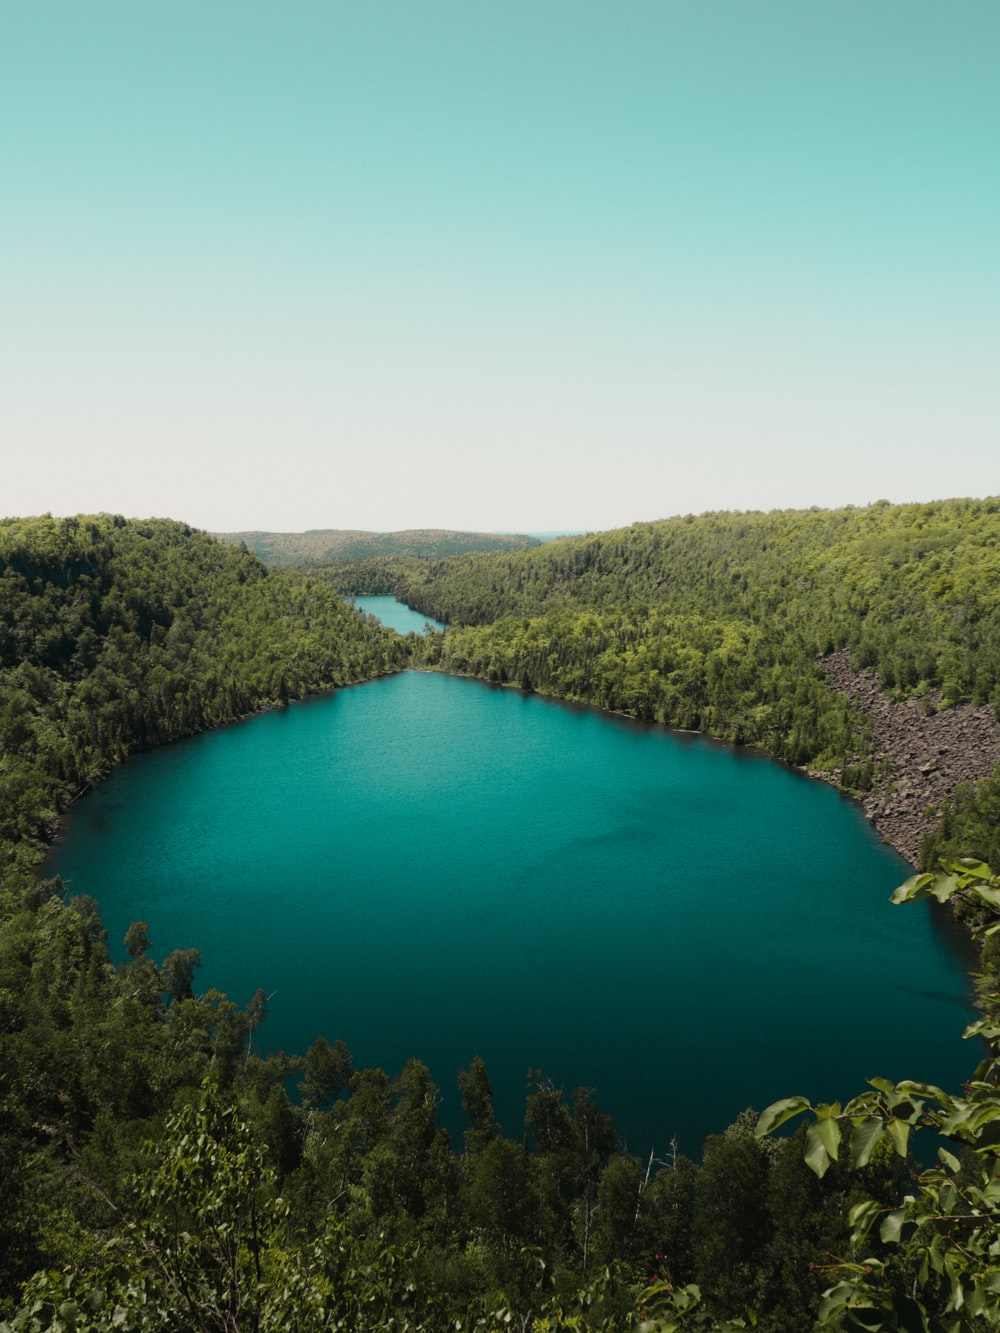 green lake surrounded by green trees during daytime